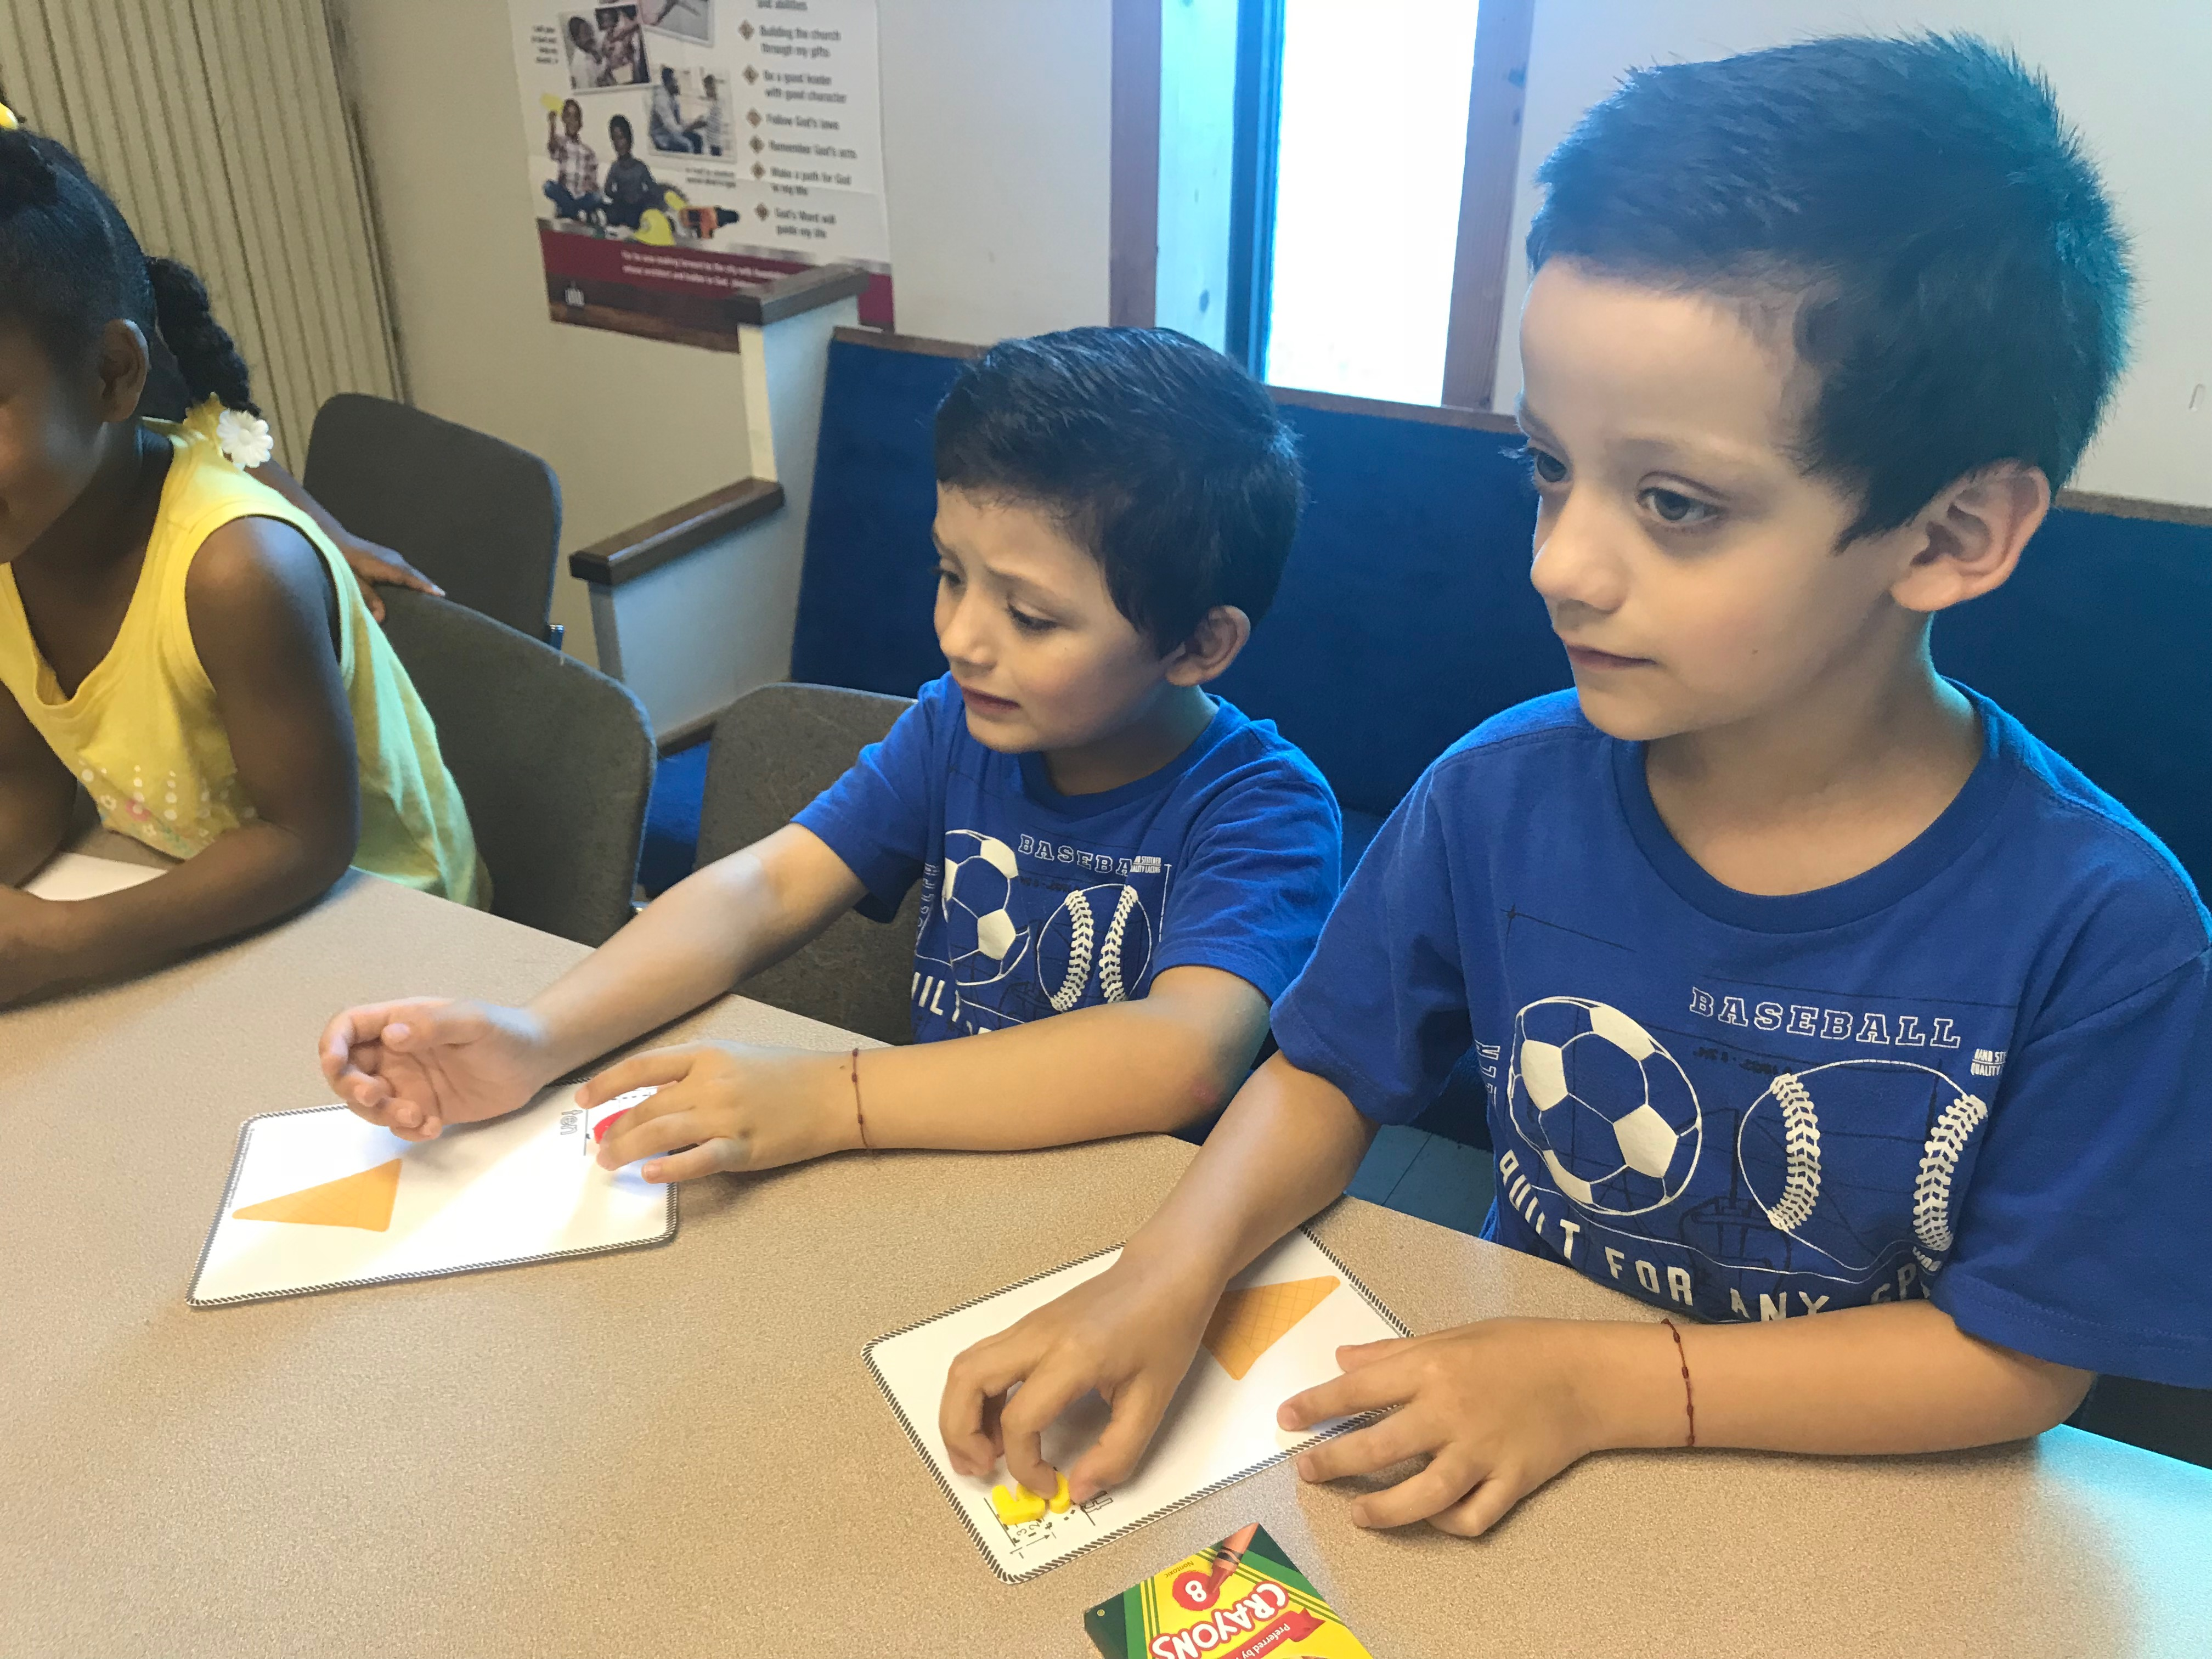 In this counting exercise, twin brothers, Rafael and Nicholas Gonzalez, prepare to stack pretend scoops of ice cream on their cones.